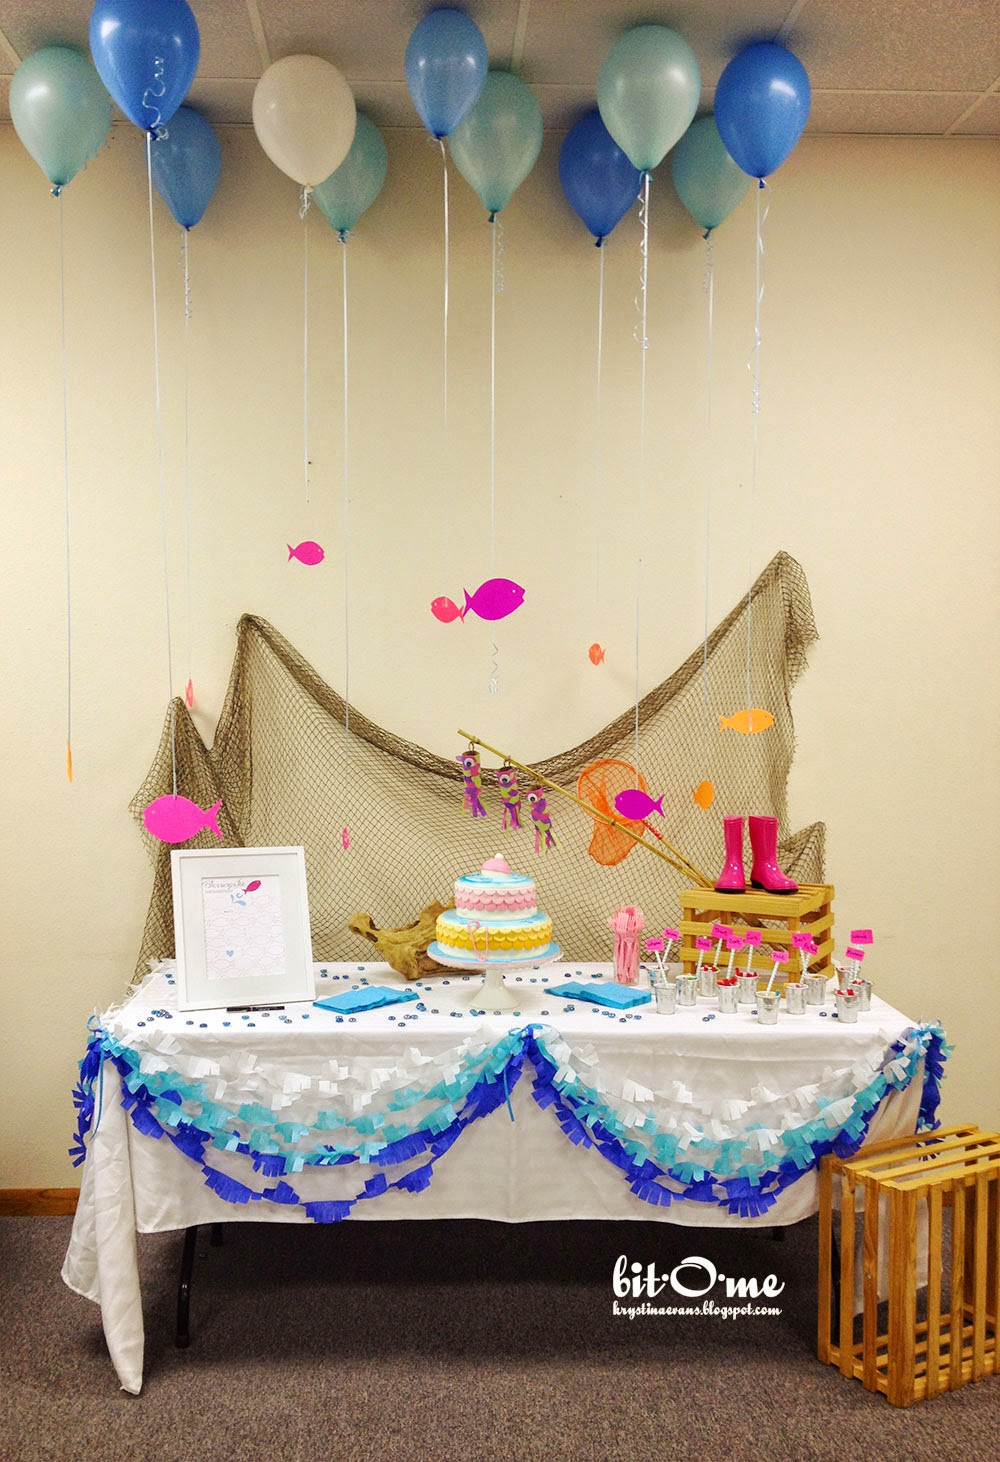 Amazing Here Are Photos From The Baby Girl Fishing Shower That I Coordinated For A  Couple At Our Church. The Parents To Be Love To Fish. The Colors Were  Bright Pink ...